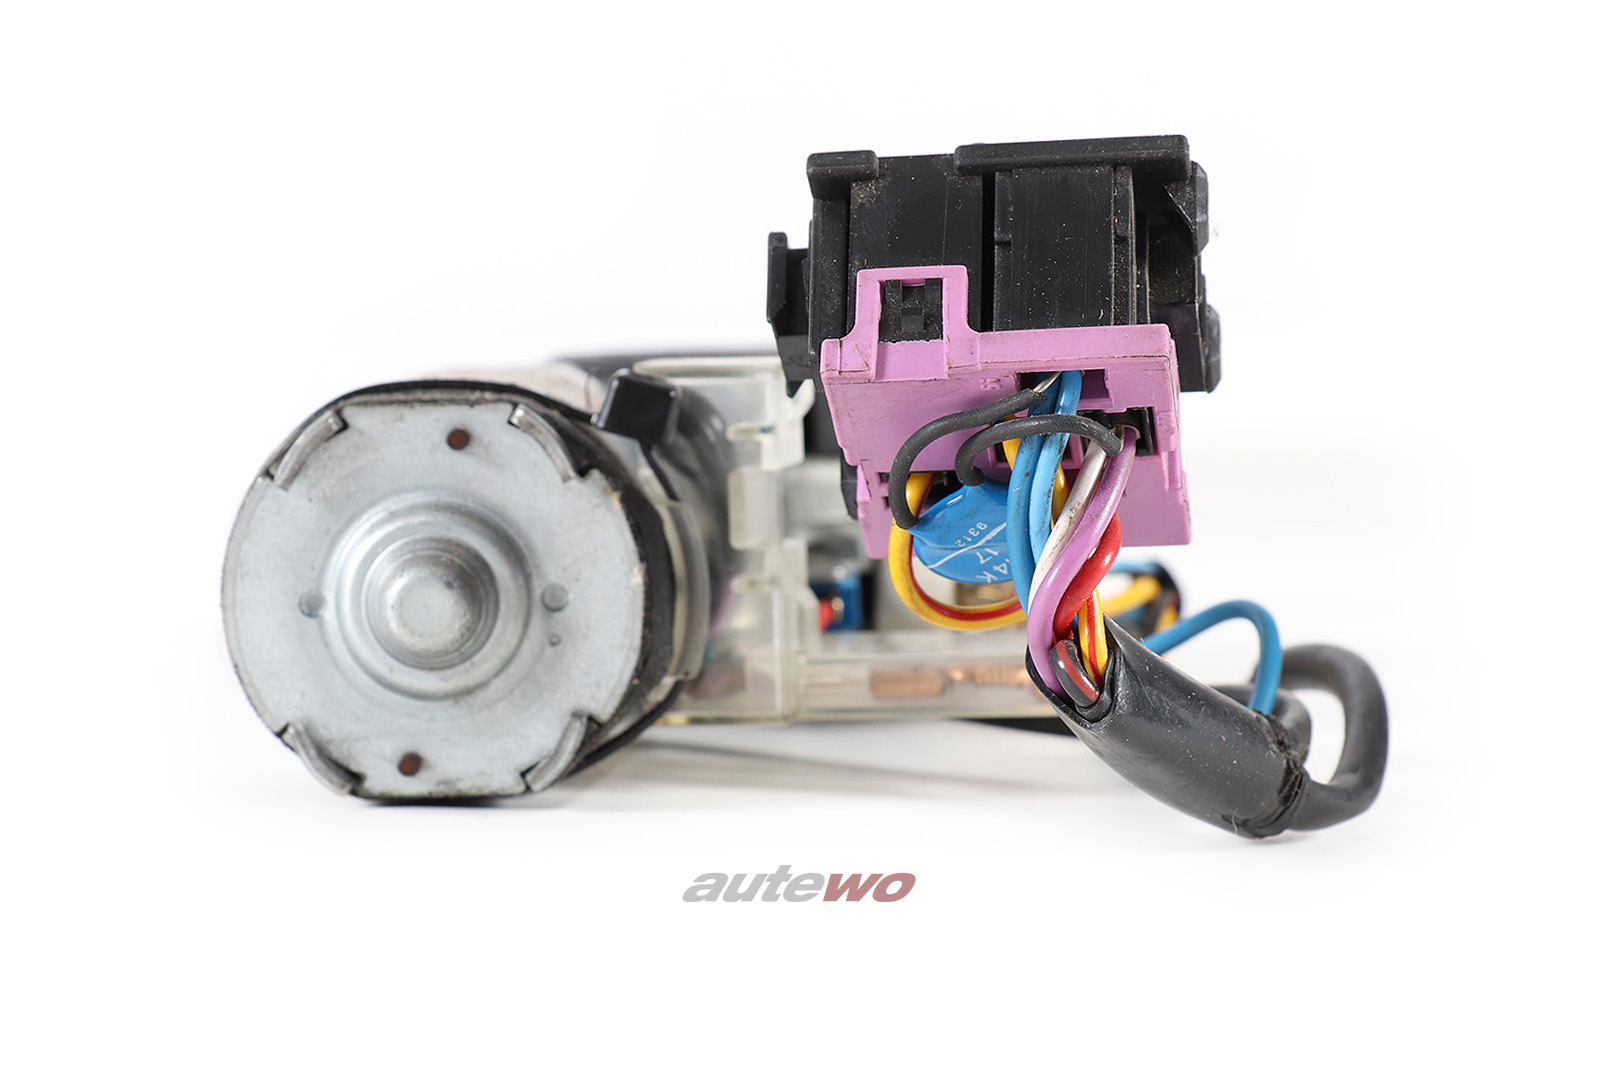 895877795B 895877795E Audi Coupe Typ 89/S2 Schiebedachmotor